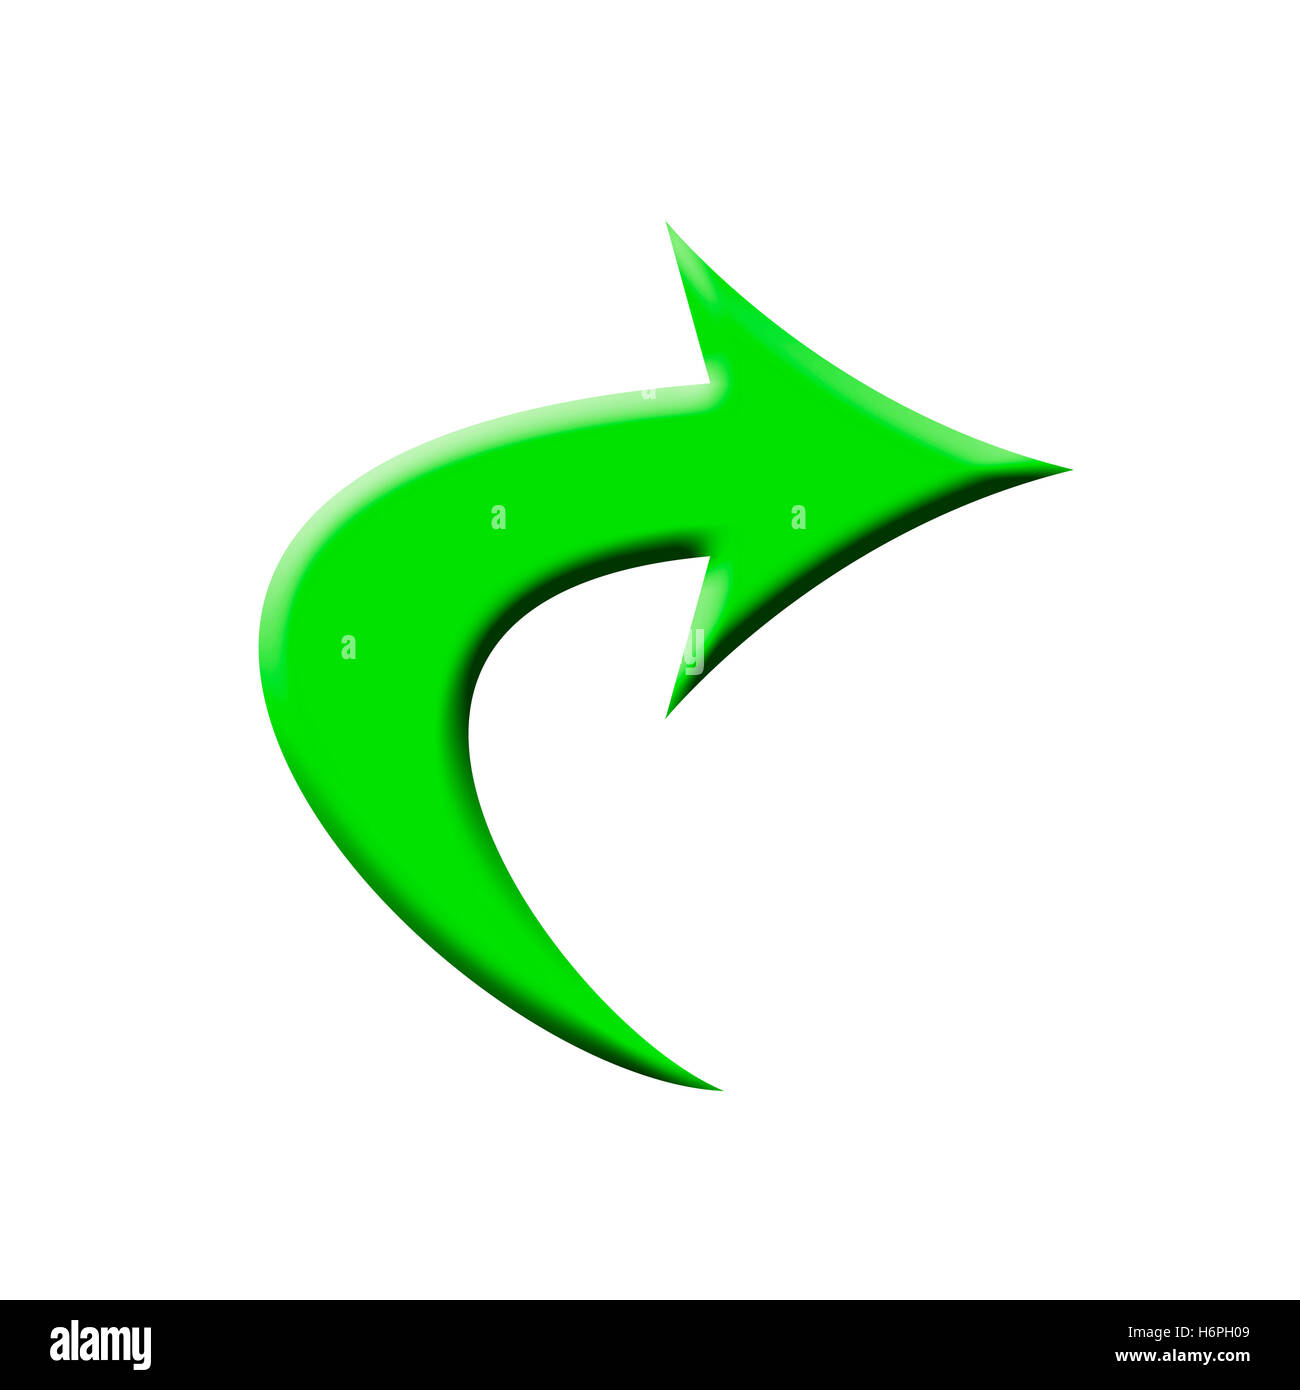 green arrow - Stock Image